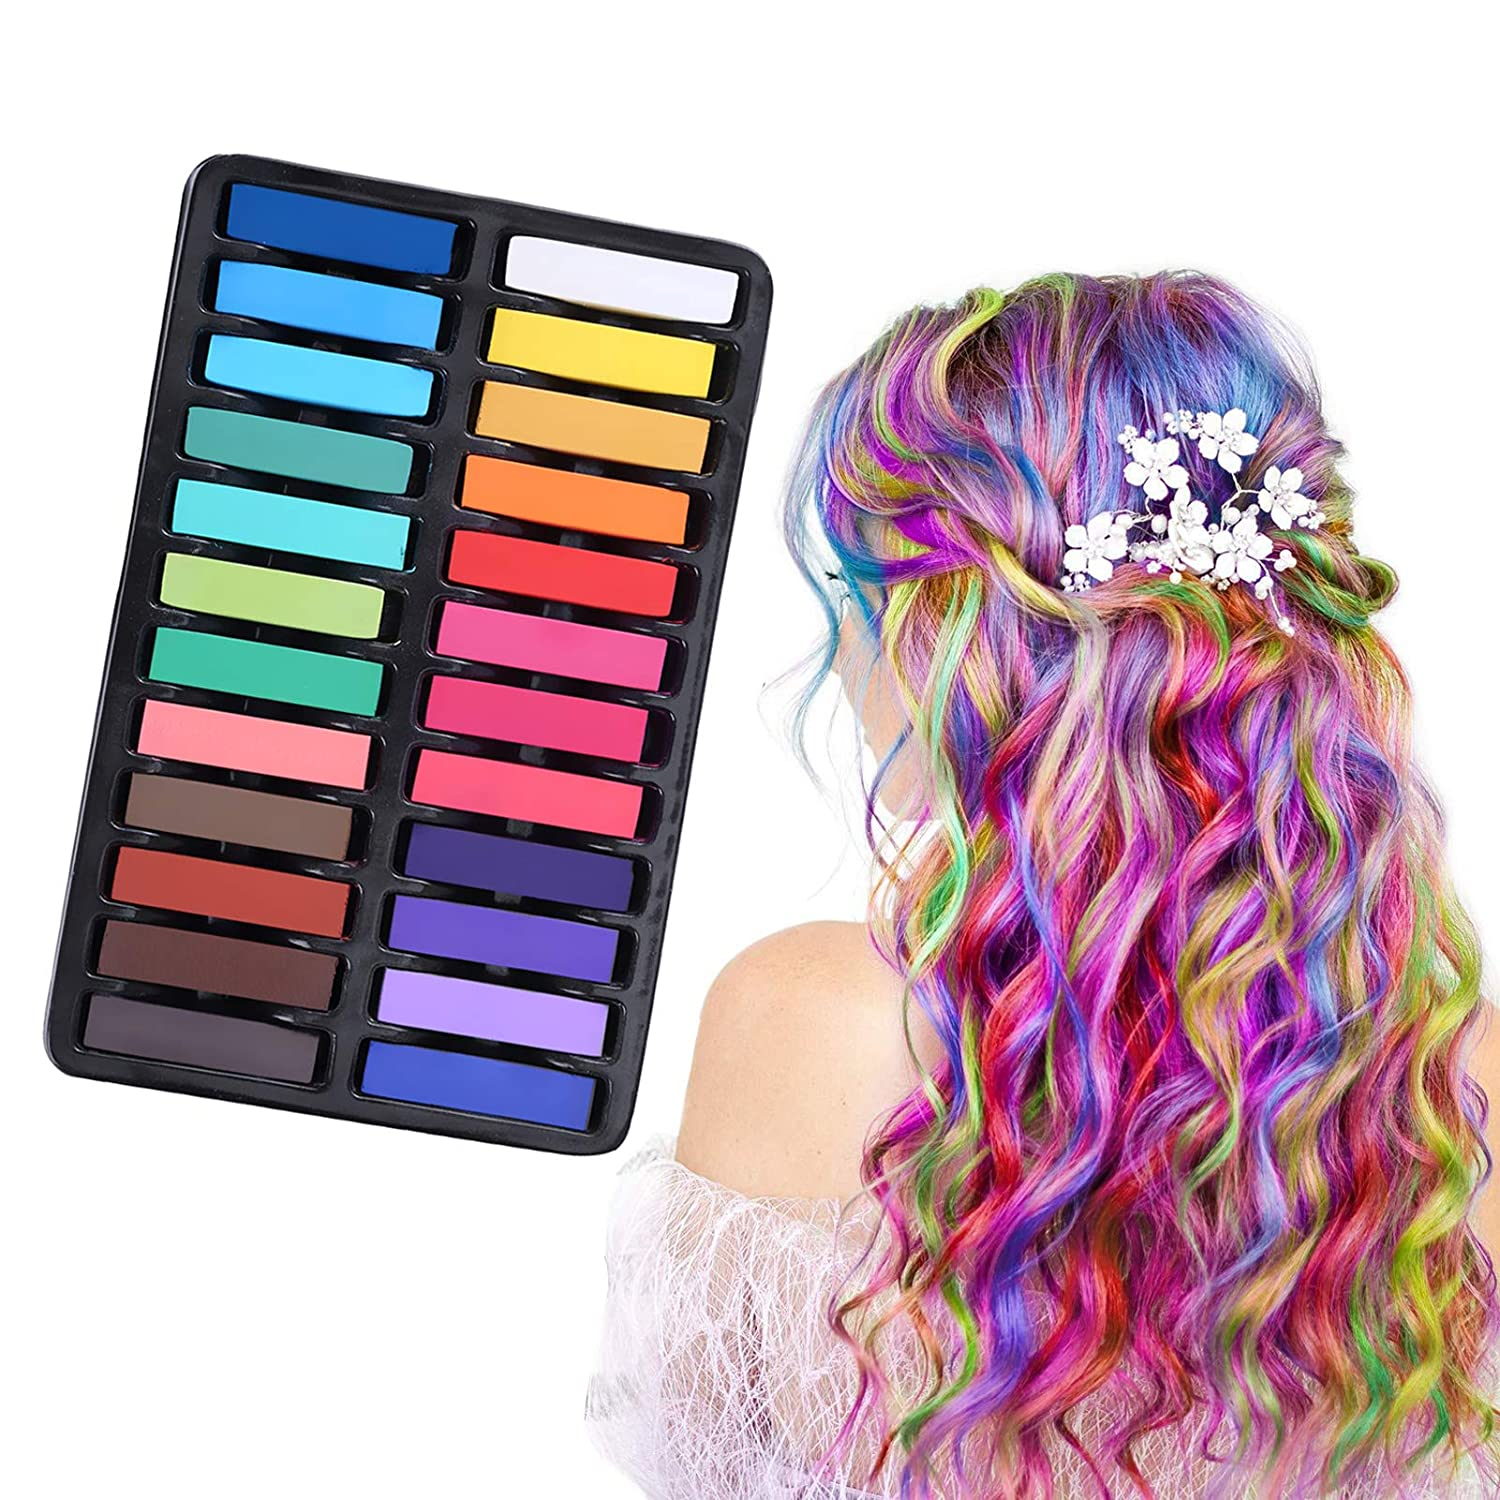 Hair Chalk, Temporary Hair Dye, Hair Chalk Dye,Hair Colorations, Pastel Chalk Kit, 24 Piece Temporary Hair Chalks Kit For Girls,Hair Chalk for Parties, Cosplay, Christmas, Birthday, Halloween